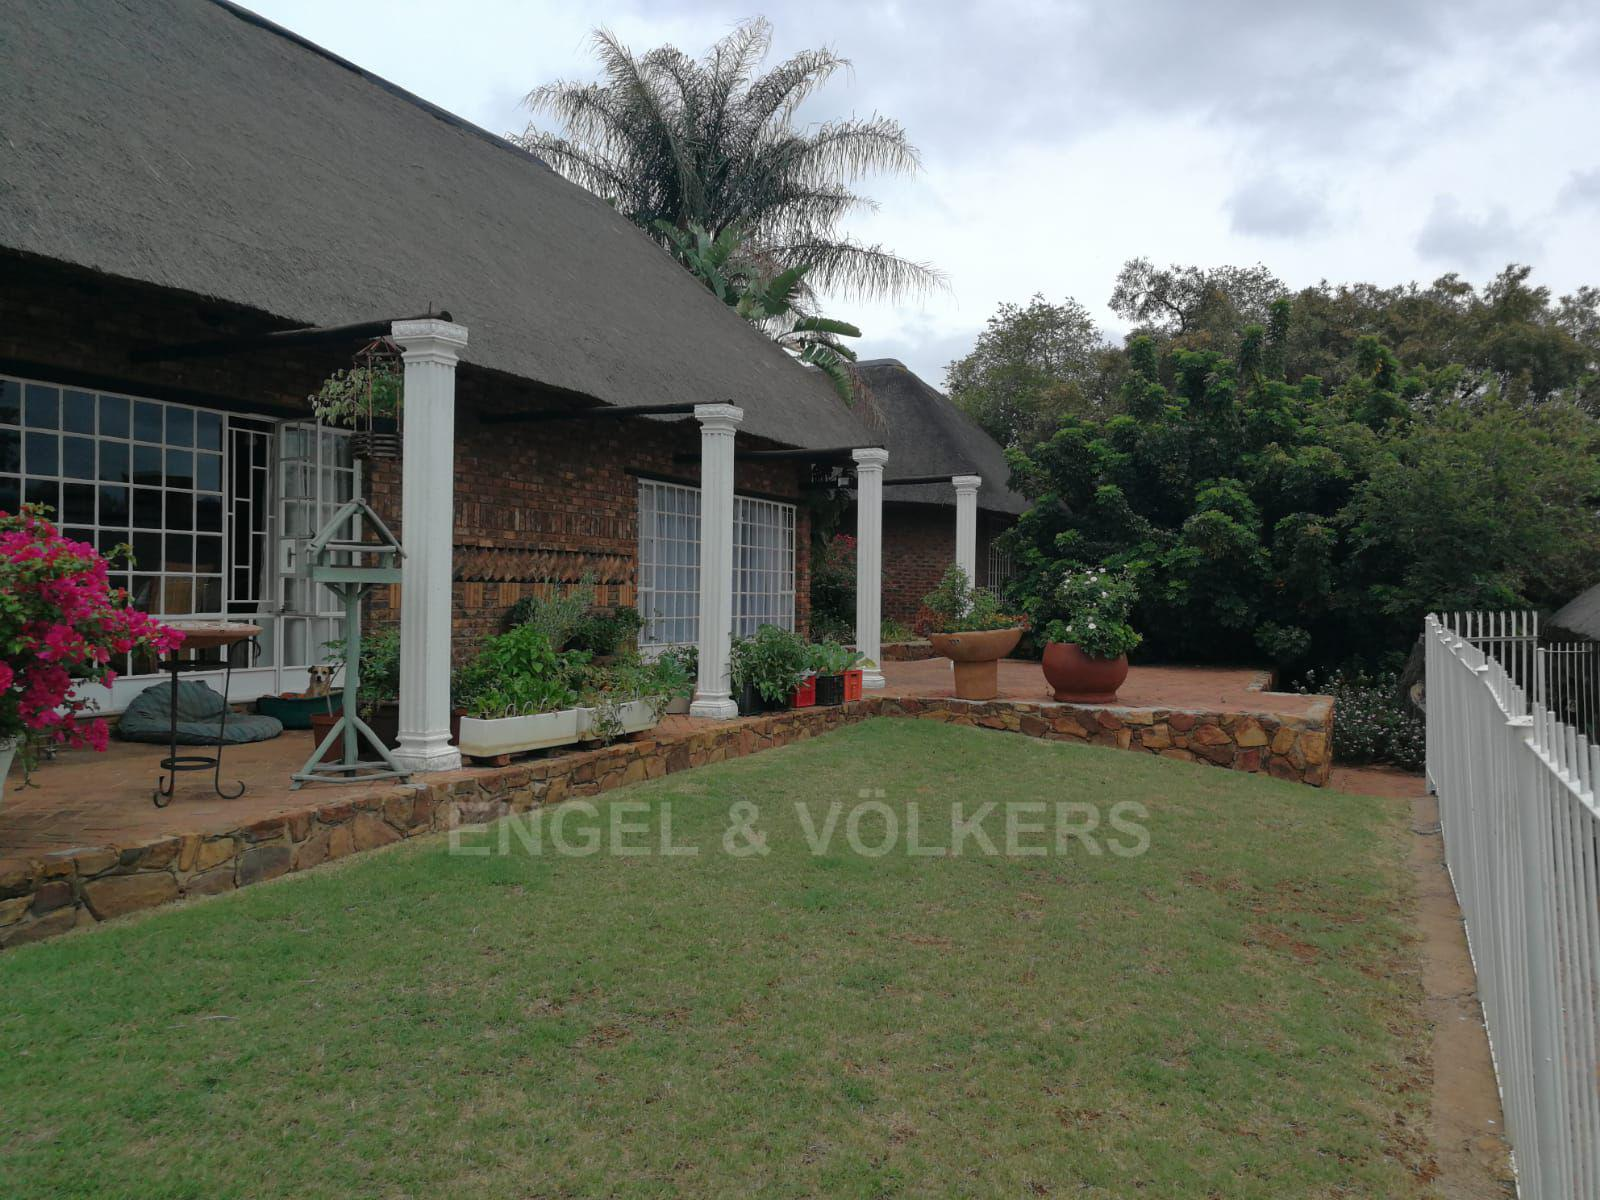 Land in Hartbeespoort Dam Area - Large farmhouse with established gardens